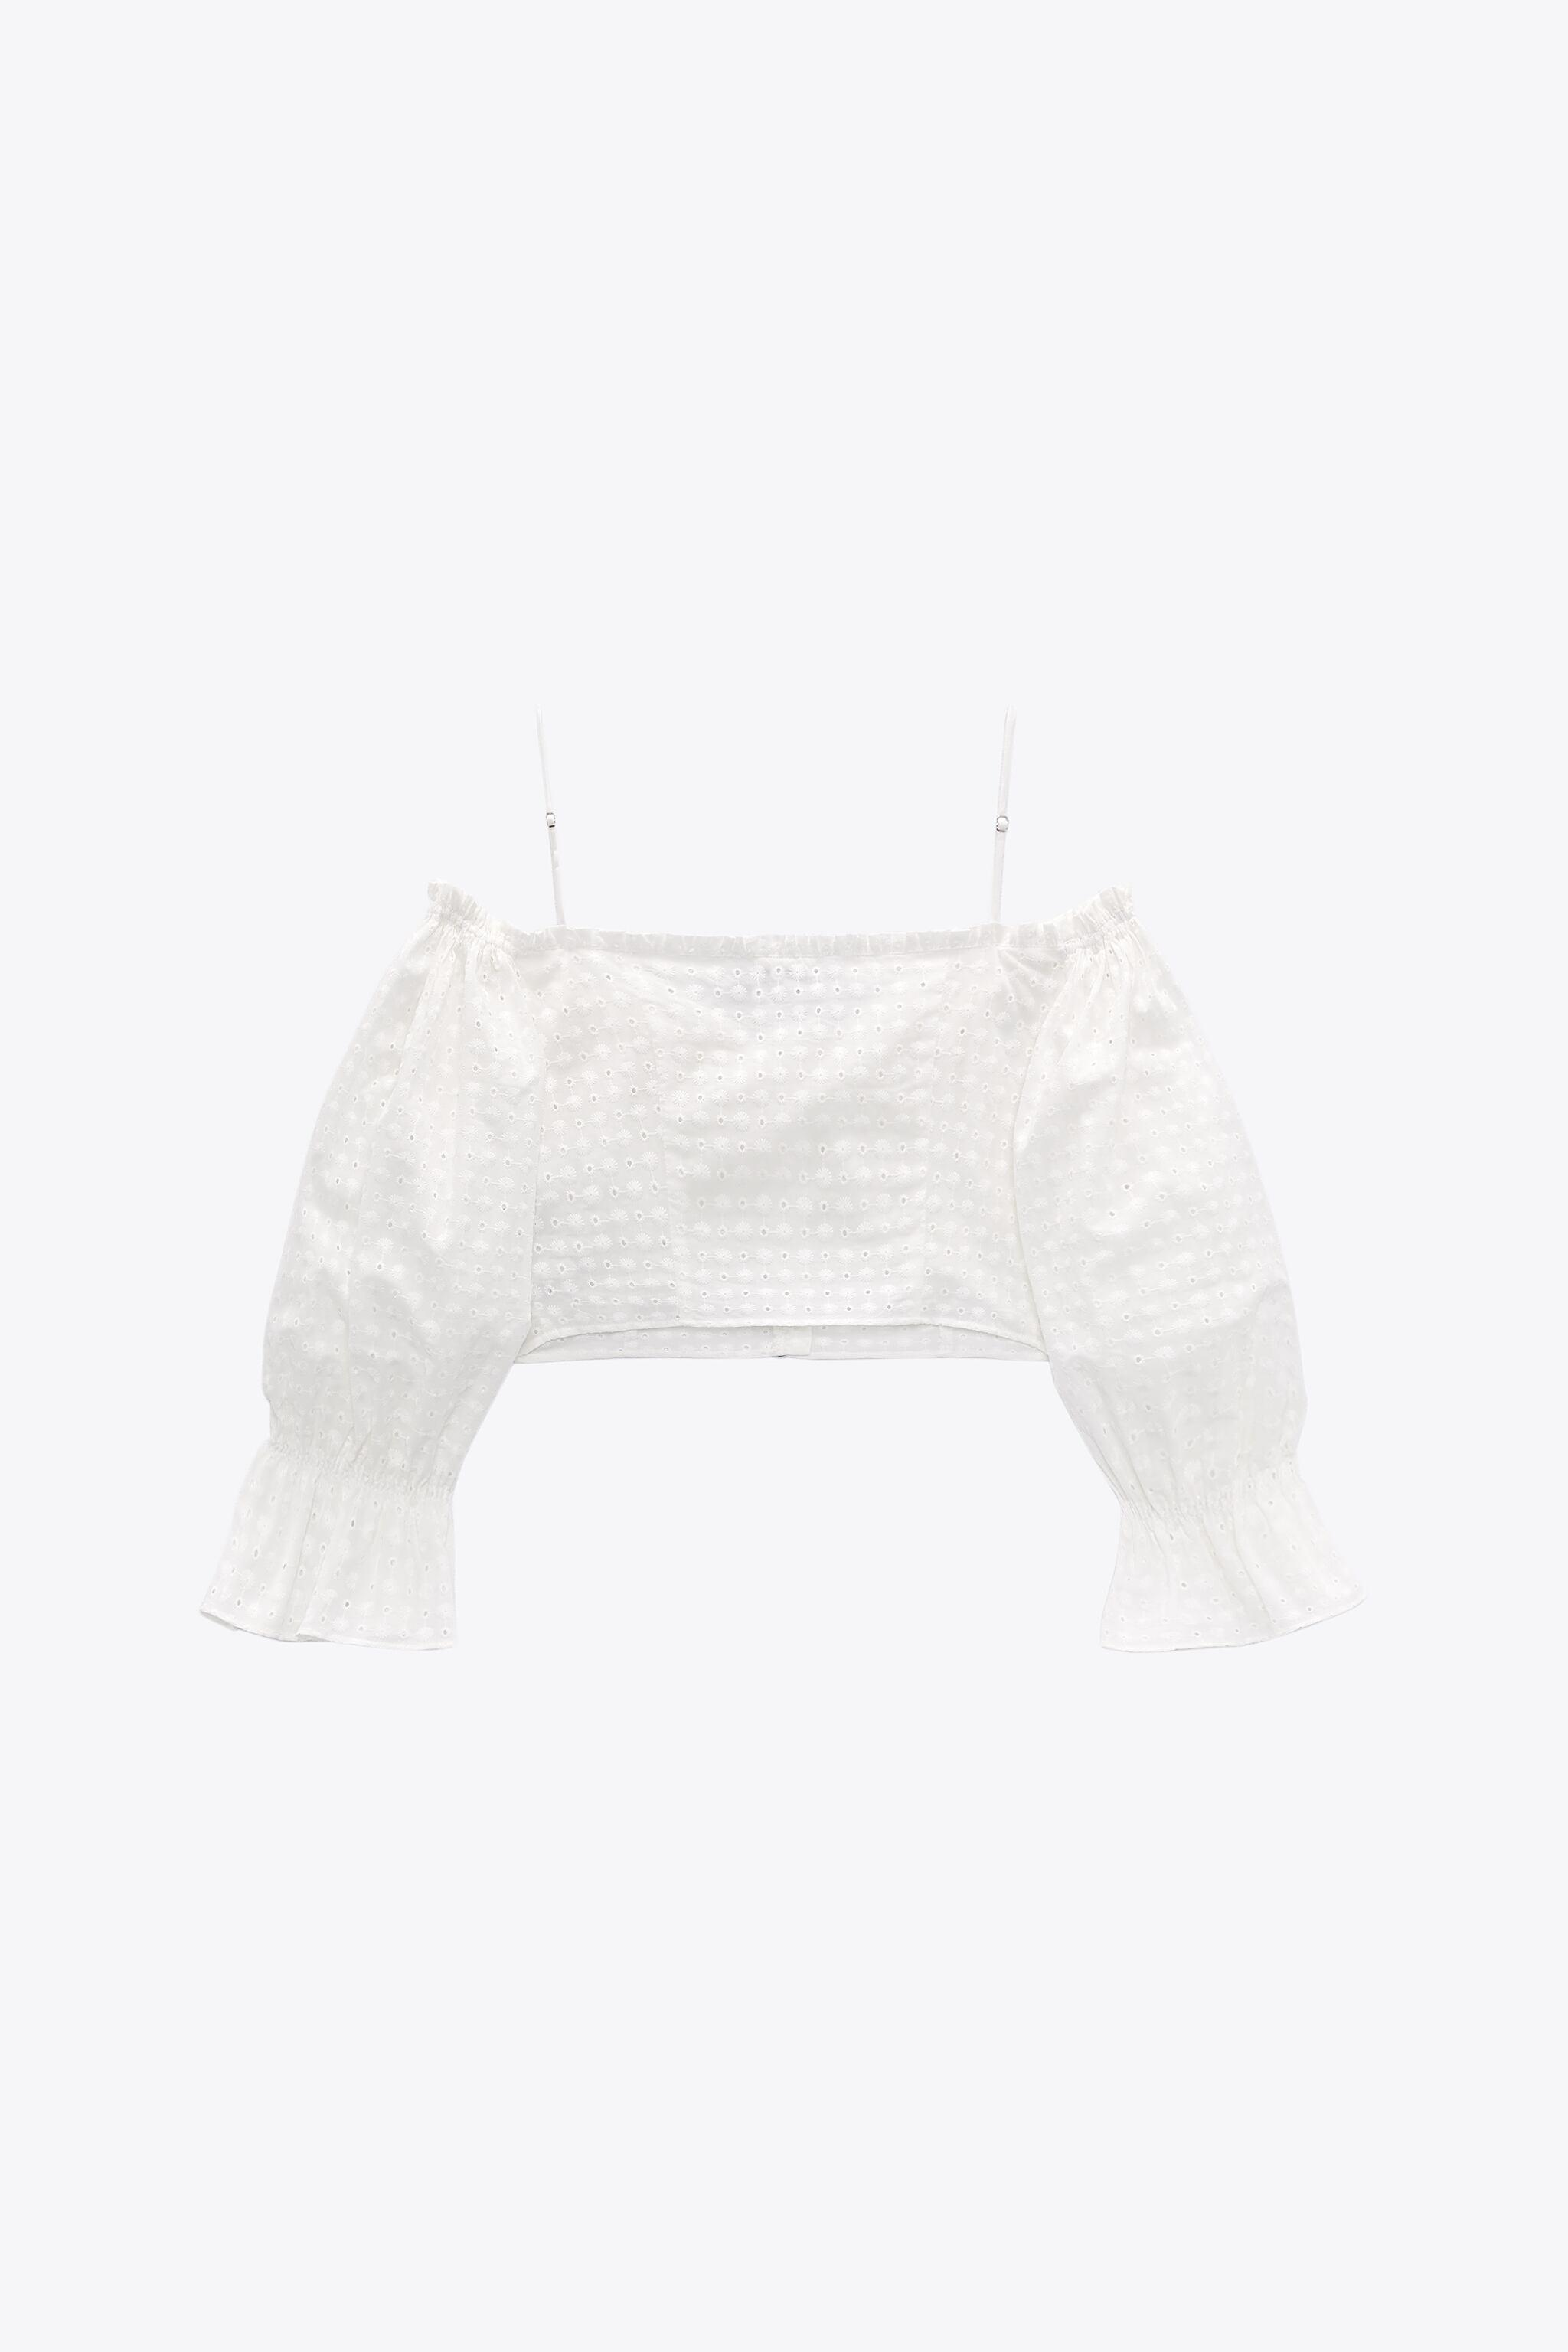 EMBROIDERED EYELET CROP TOP 8